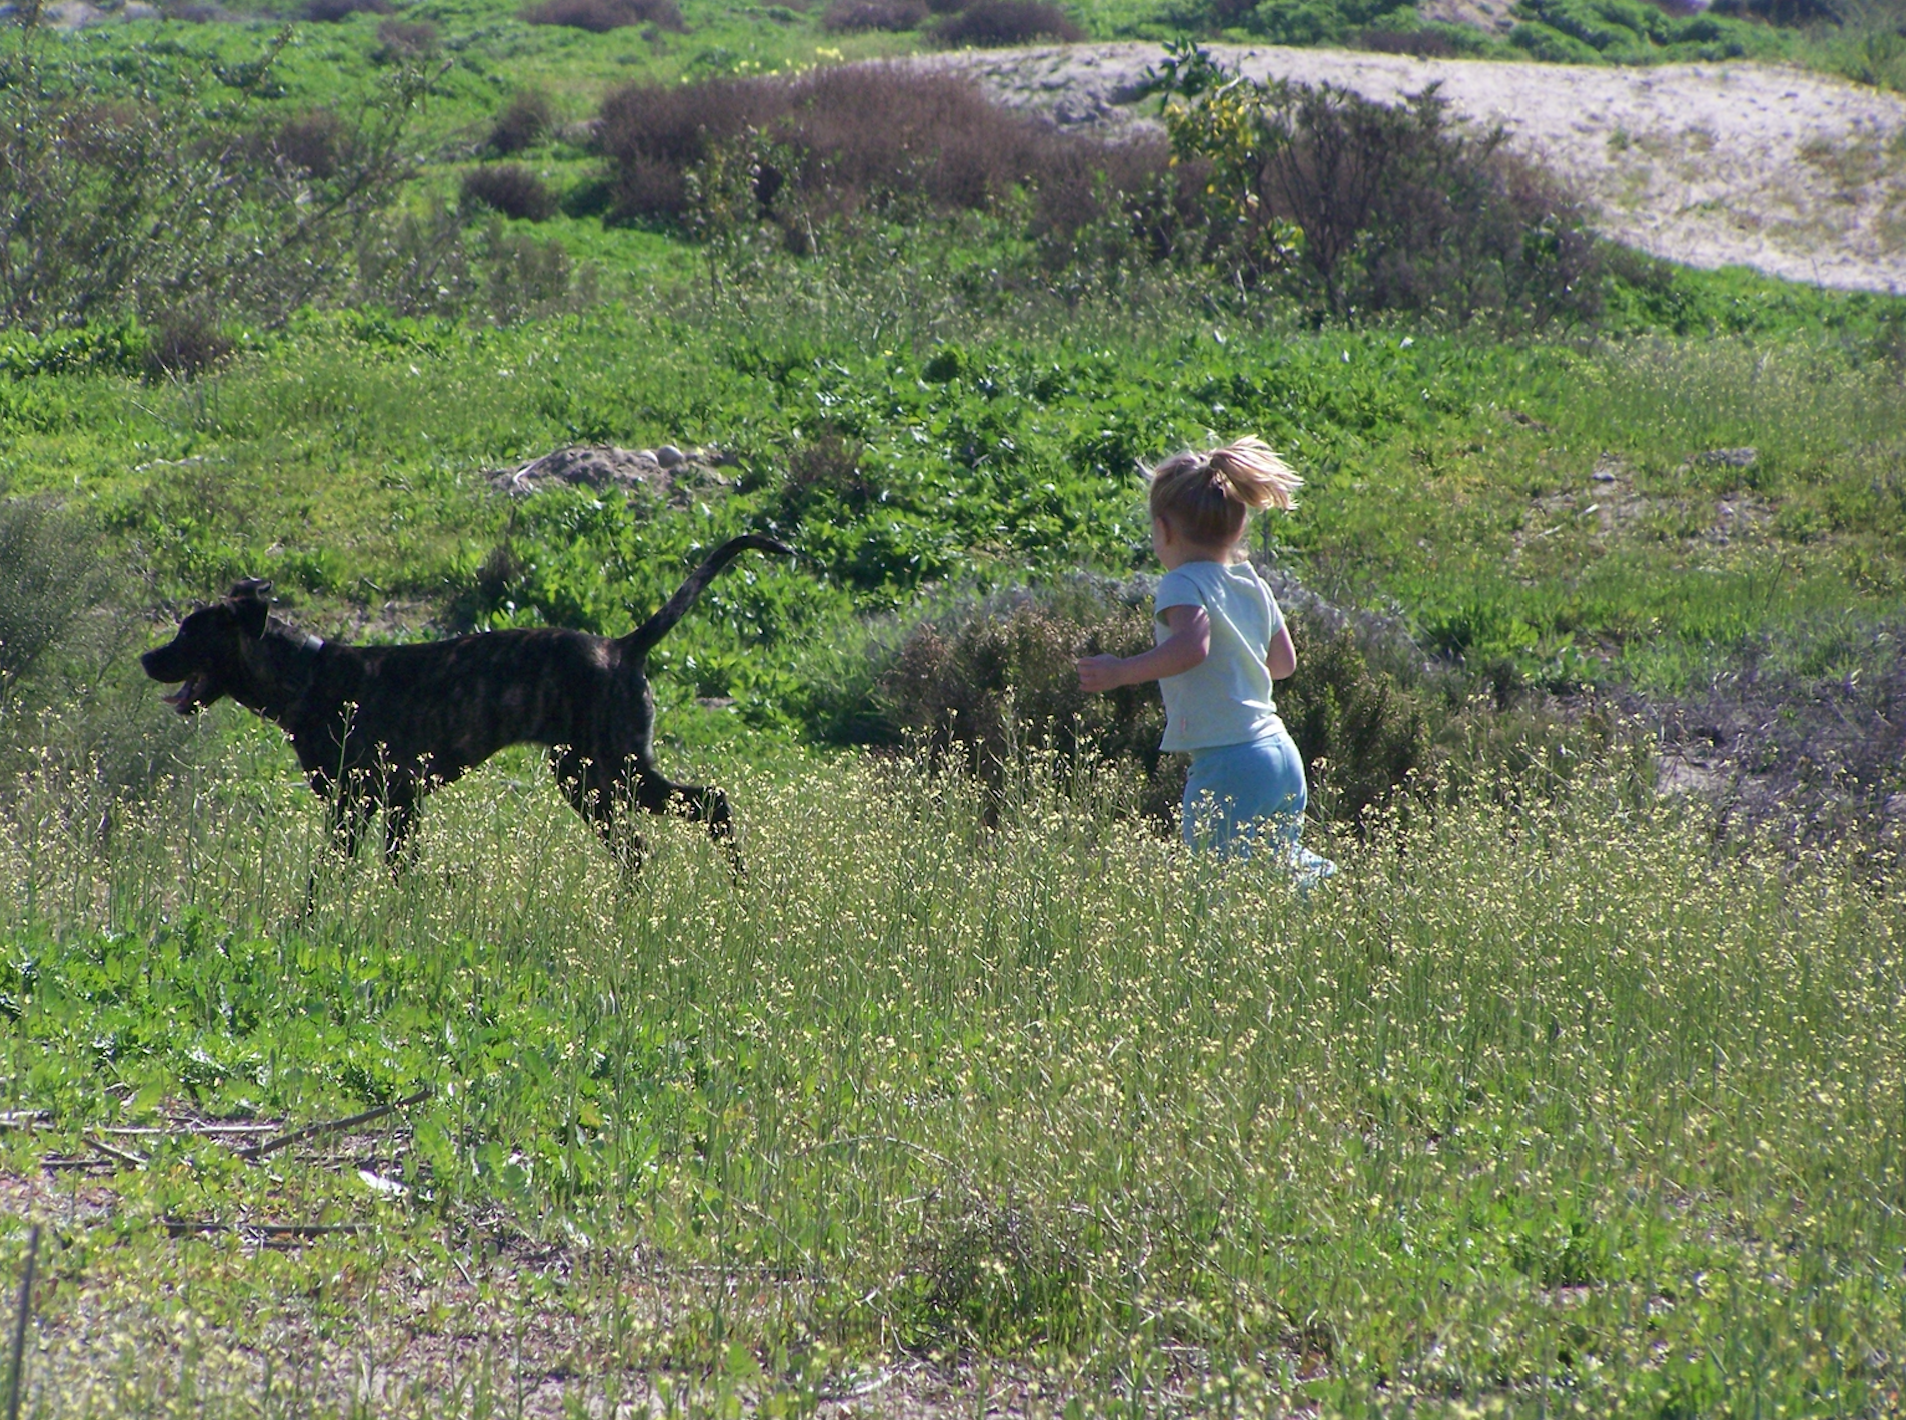 My daughter (age 3) and dog on one of our many adventures in San Diego, CA.